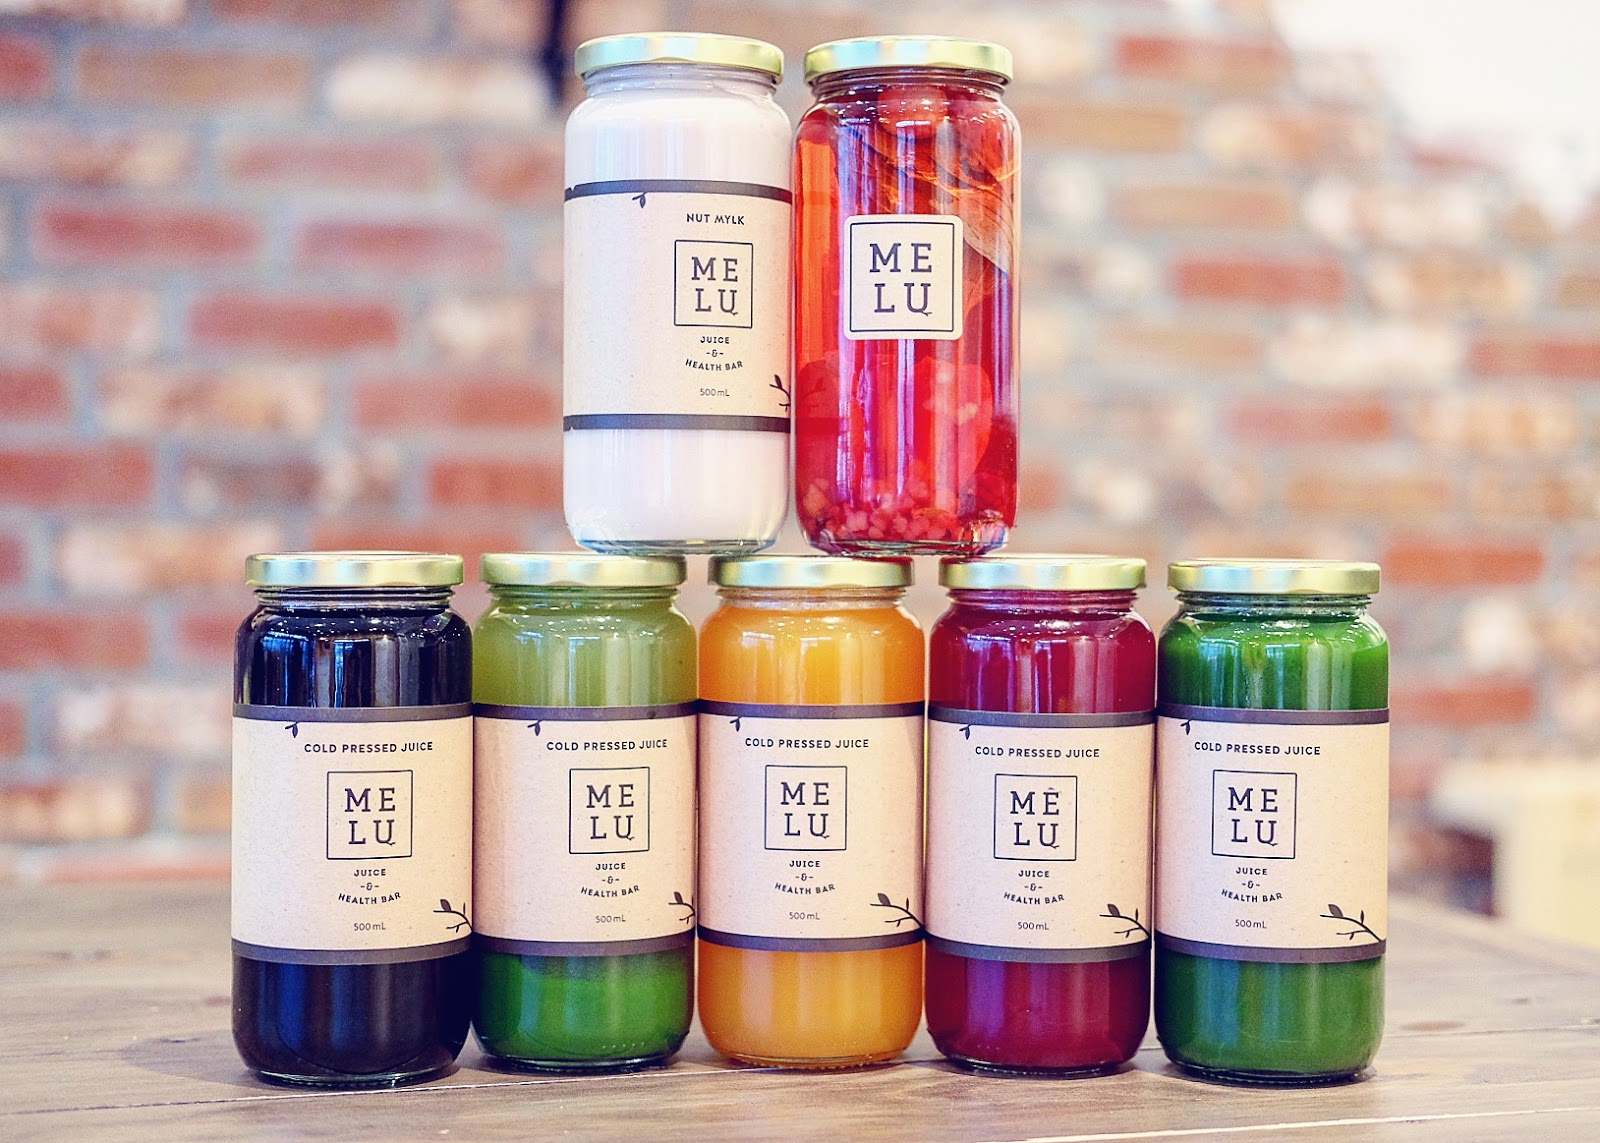 cold pressed juice cleanse reviews